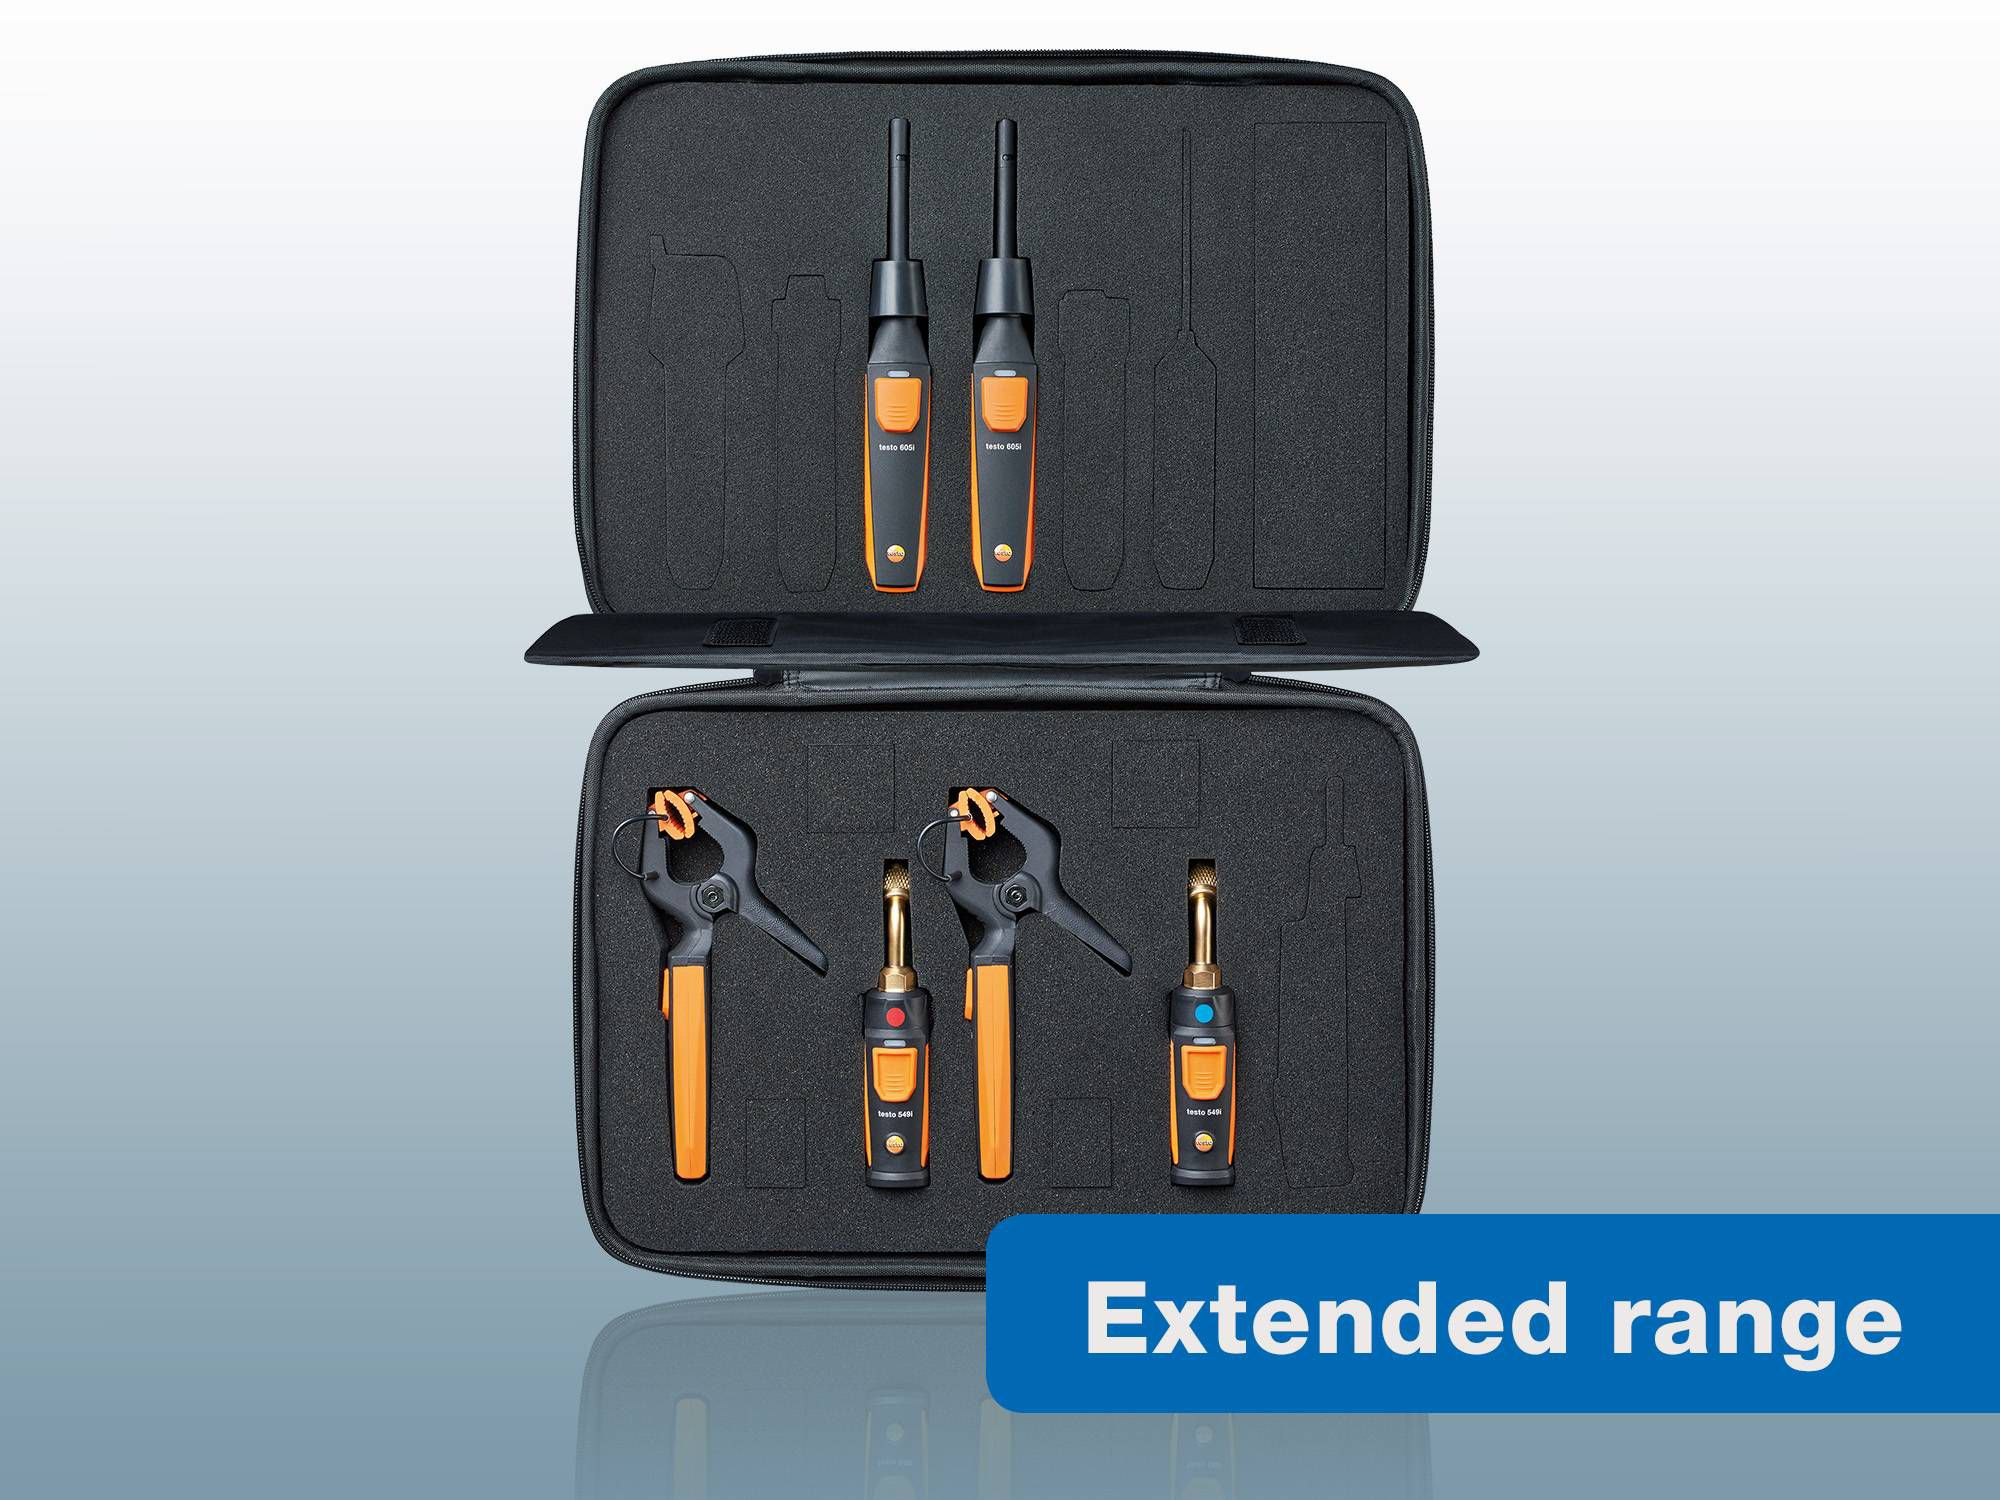 New testo Smart Probes AC & refrigeration test and load kit with extended Bluetooth range